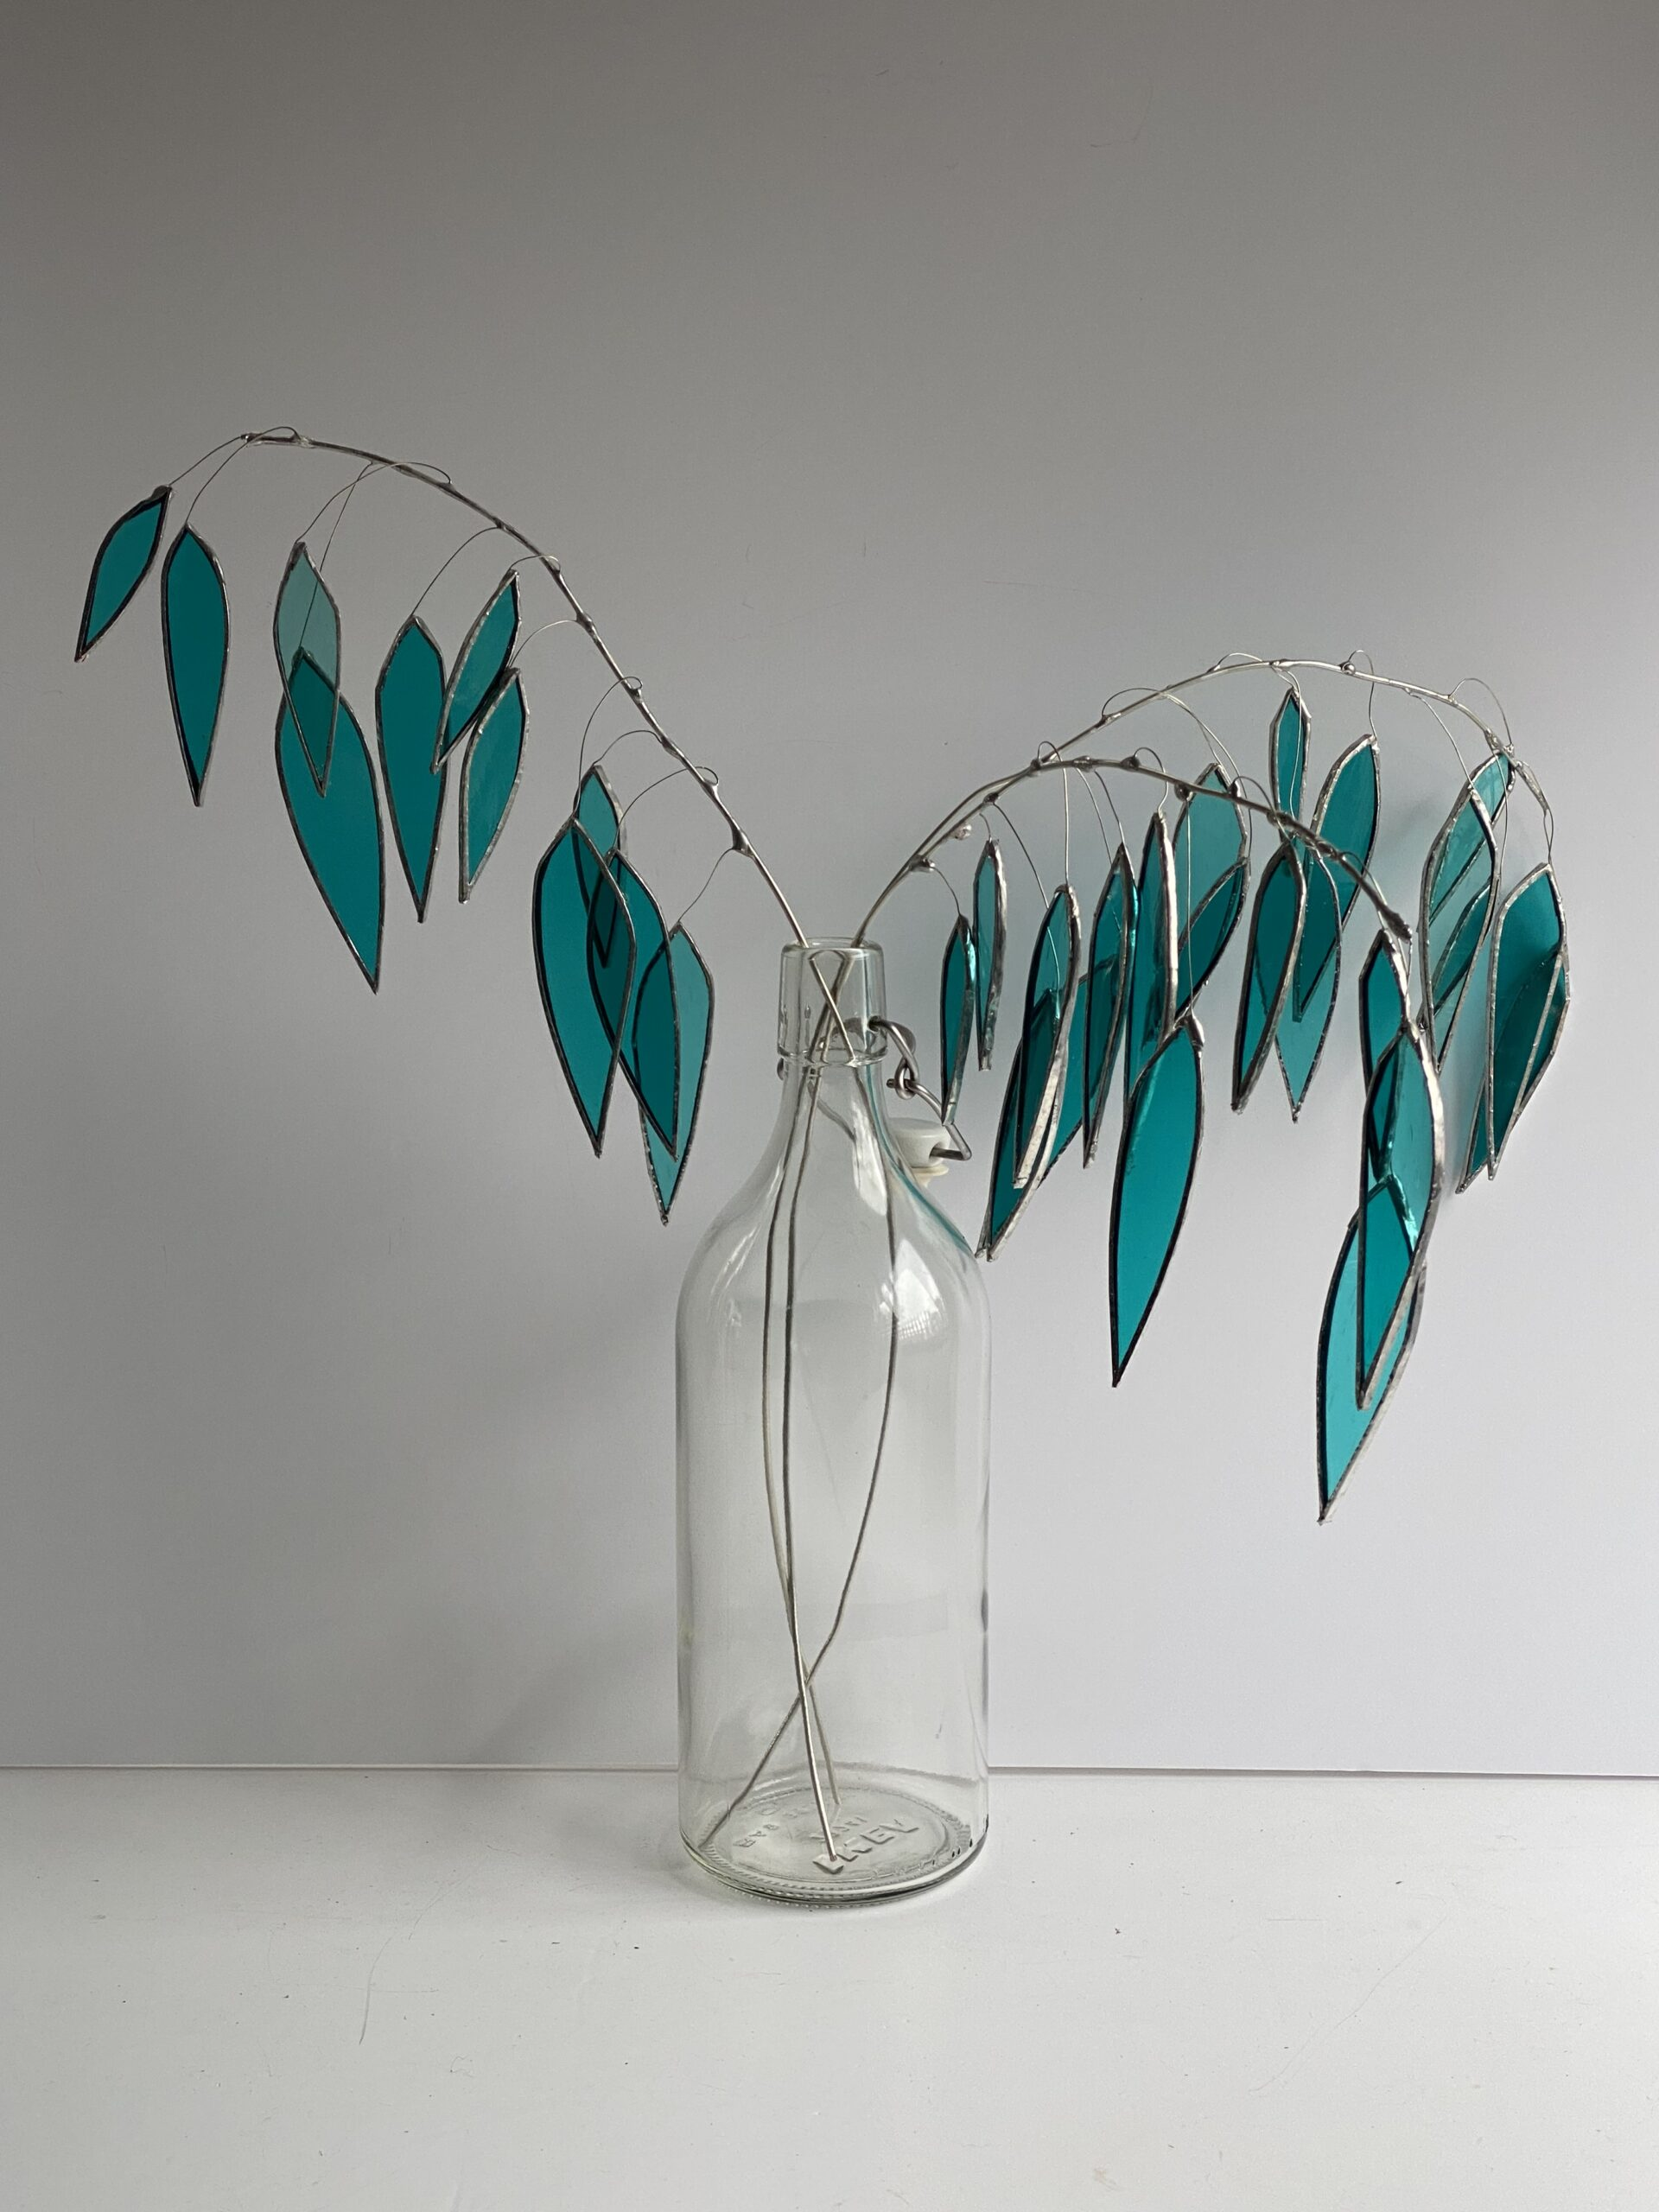 Stained glass branches of weeping willow by Samantha Yates.